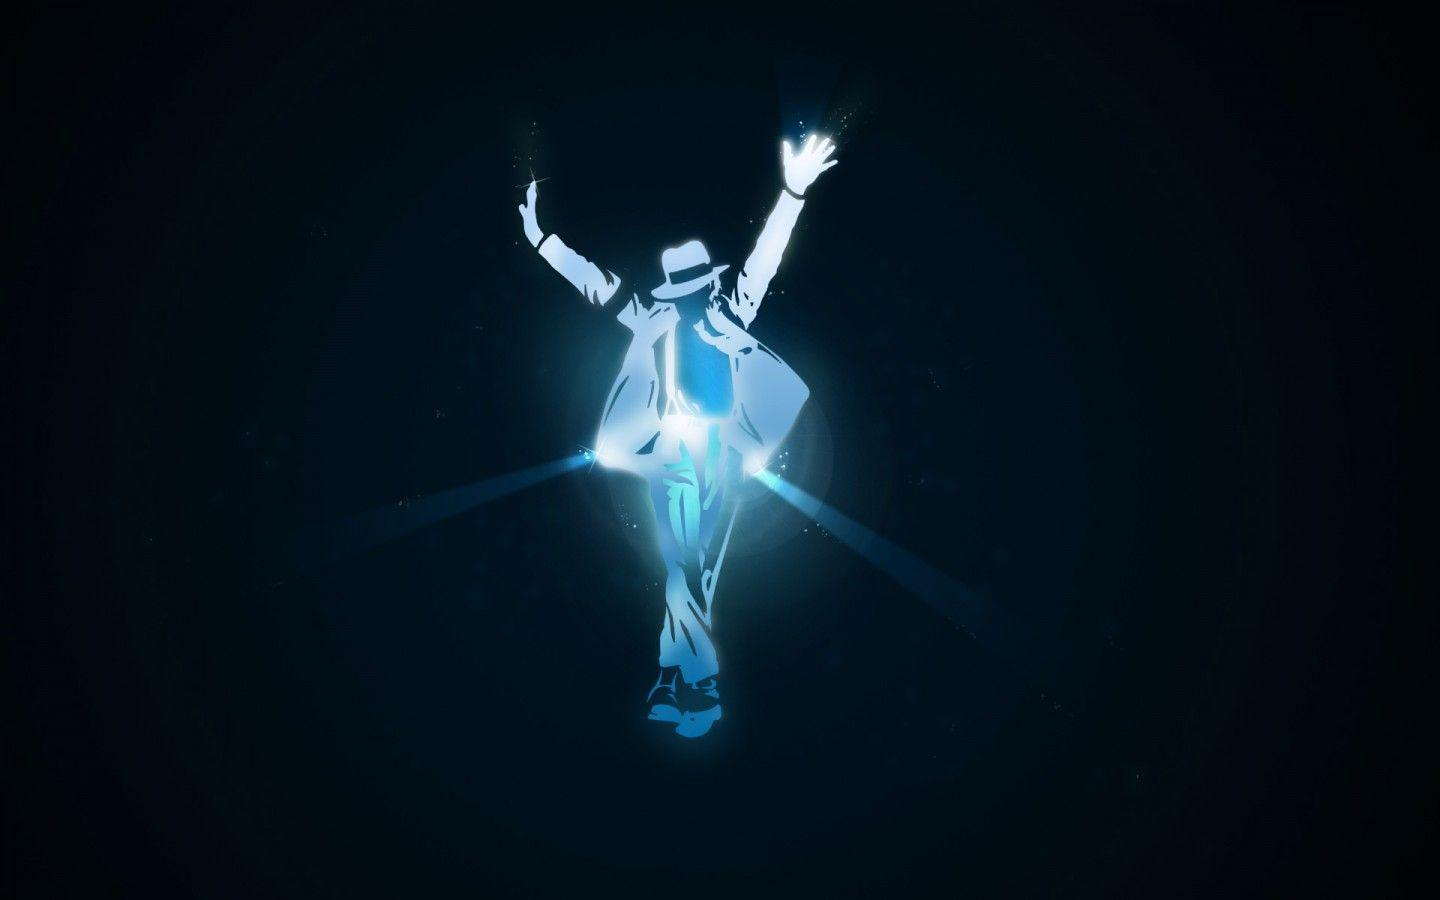 Michael Jackson Wallpaper Hd Background Wallpaper 36 HD Wallpapers ...